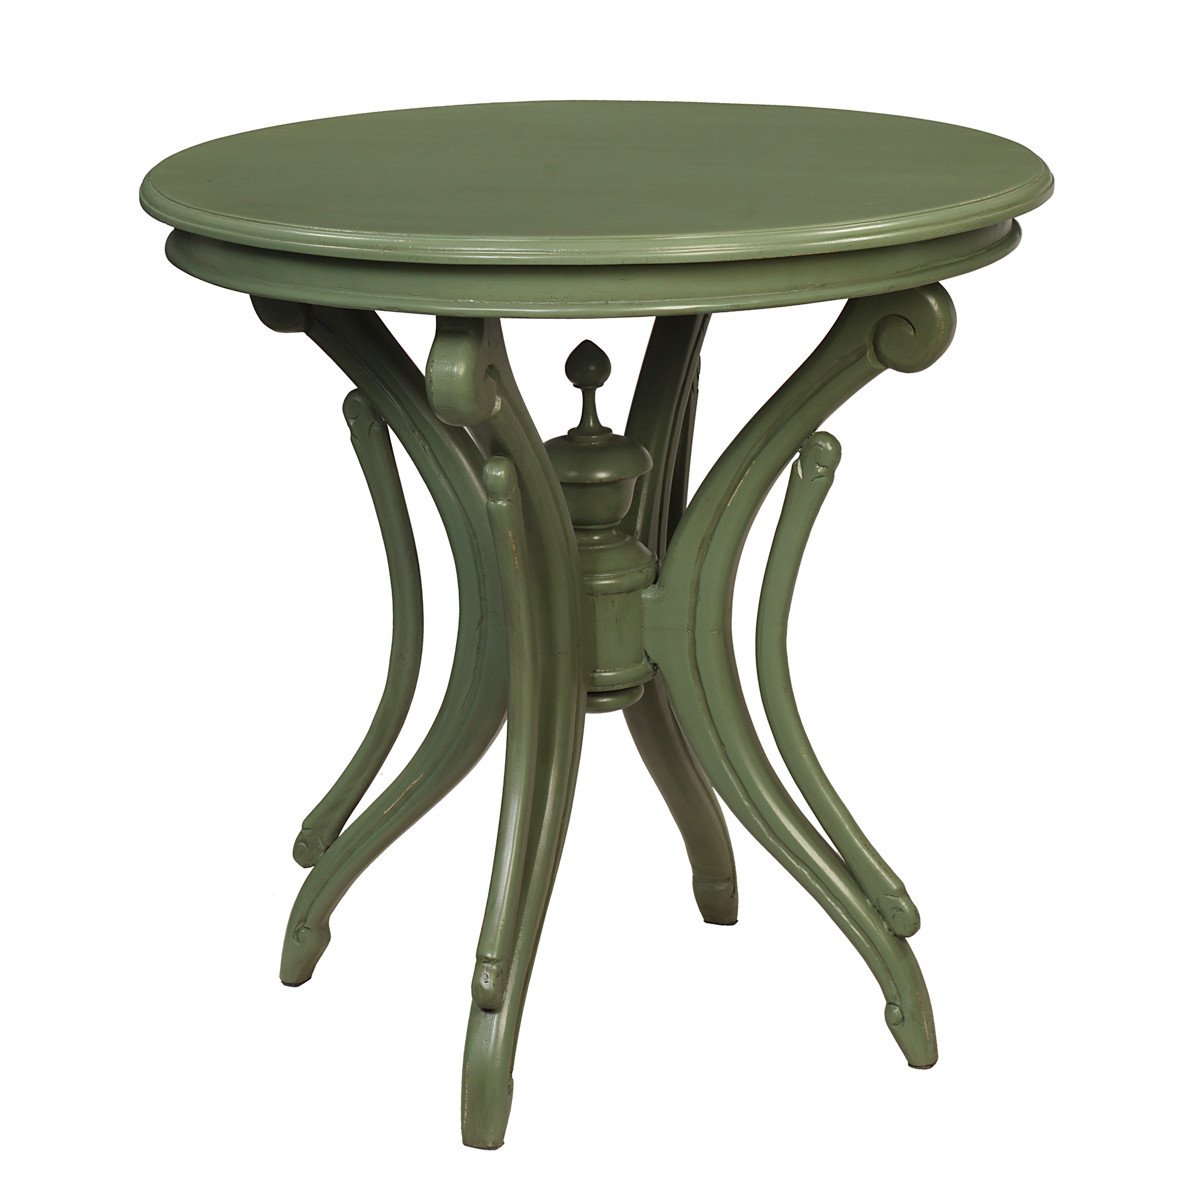 clove round accent table green bay wrightwood furniture cengkeh elm chair small space solutions mirrored foyer outdoor bench martin home furnishings lift top side black lamp base